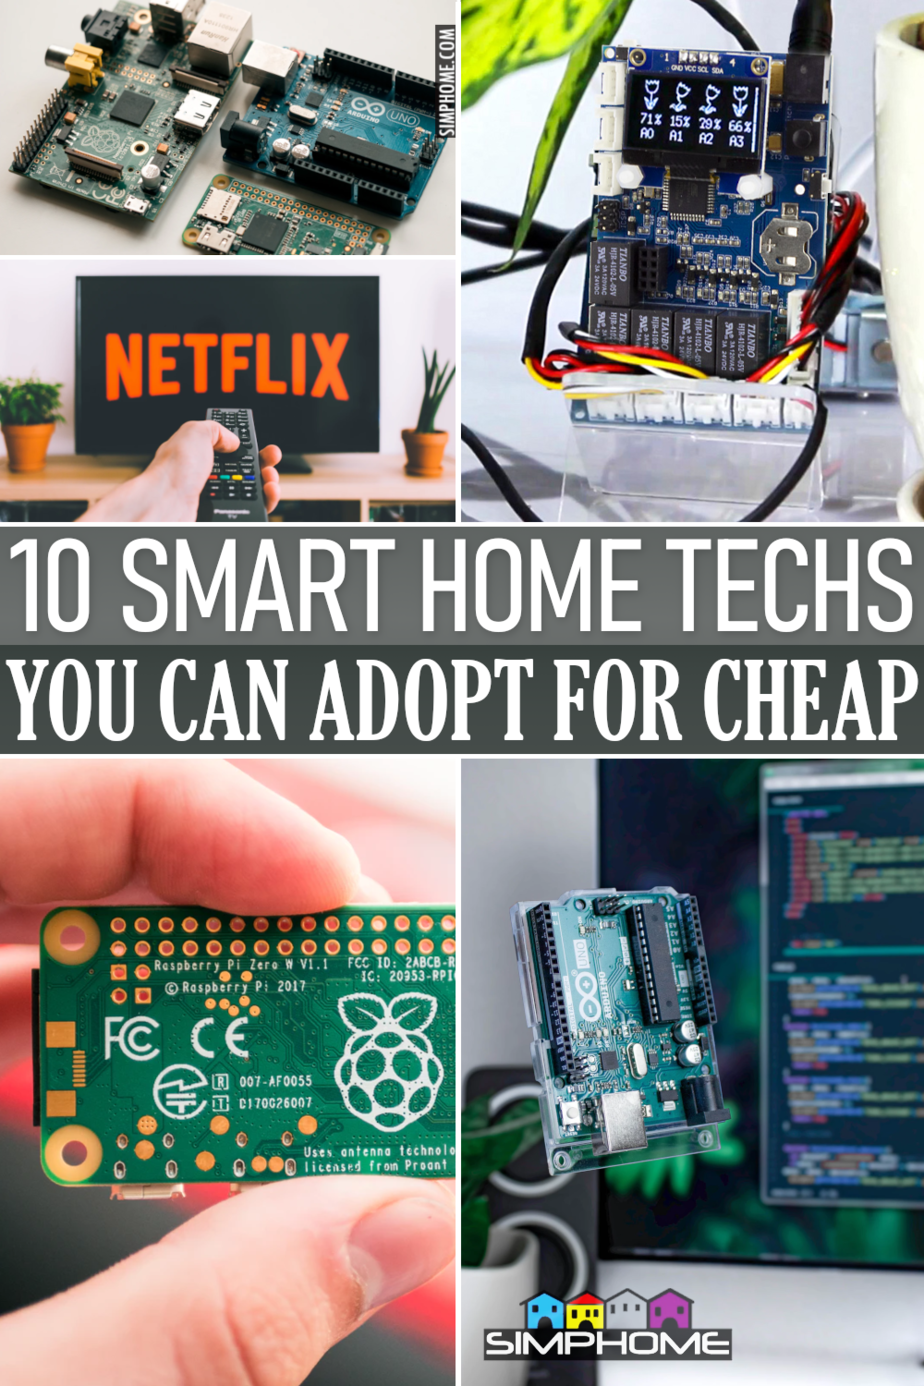 10 Smart Home Technologies You can Adopt for Cheap via Simphome.comFeatured